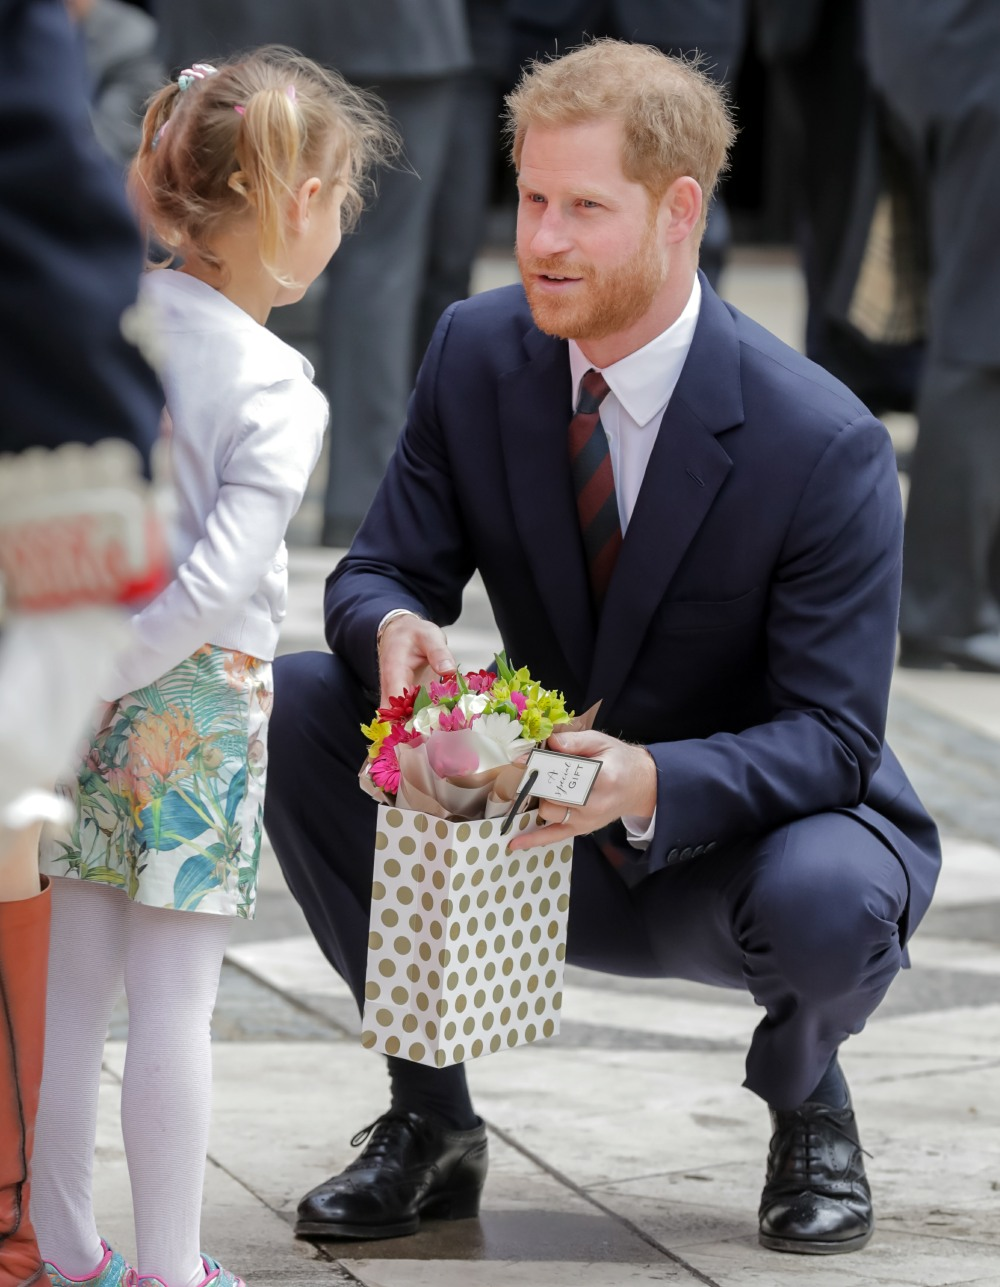 HRH Prince Harry, The Duke of Sussex receiving a boquet of flowers from Sophia, following the twelfth annual Lord Mayor's Big Curry Lunch in aid of the three National Service Charities: ABF The Soldiers' Charity, the Royal Navy and Royal Marines Charity and the Royal Air Force Benevolent Fund.